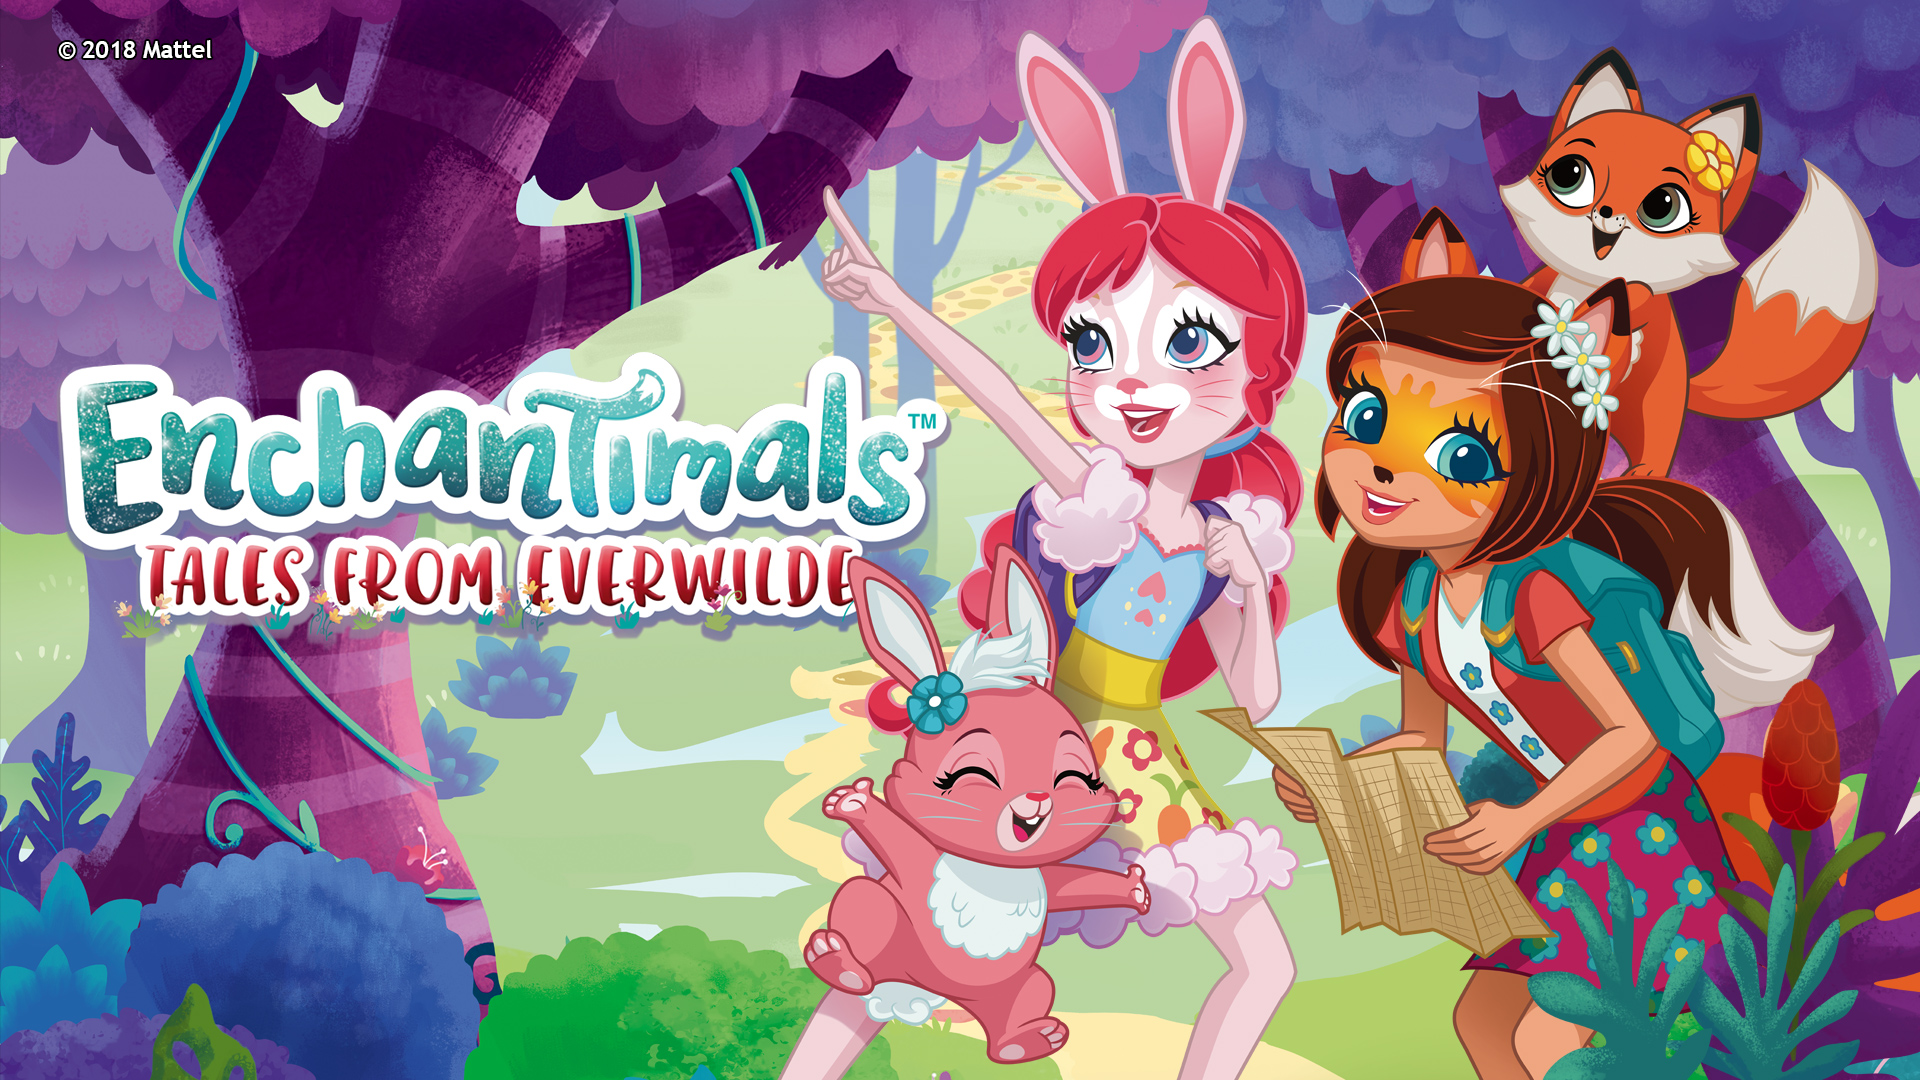 ENCHANTIMALS: TALES FROM EVERWILDE